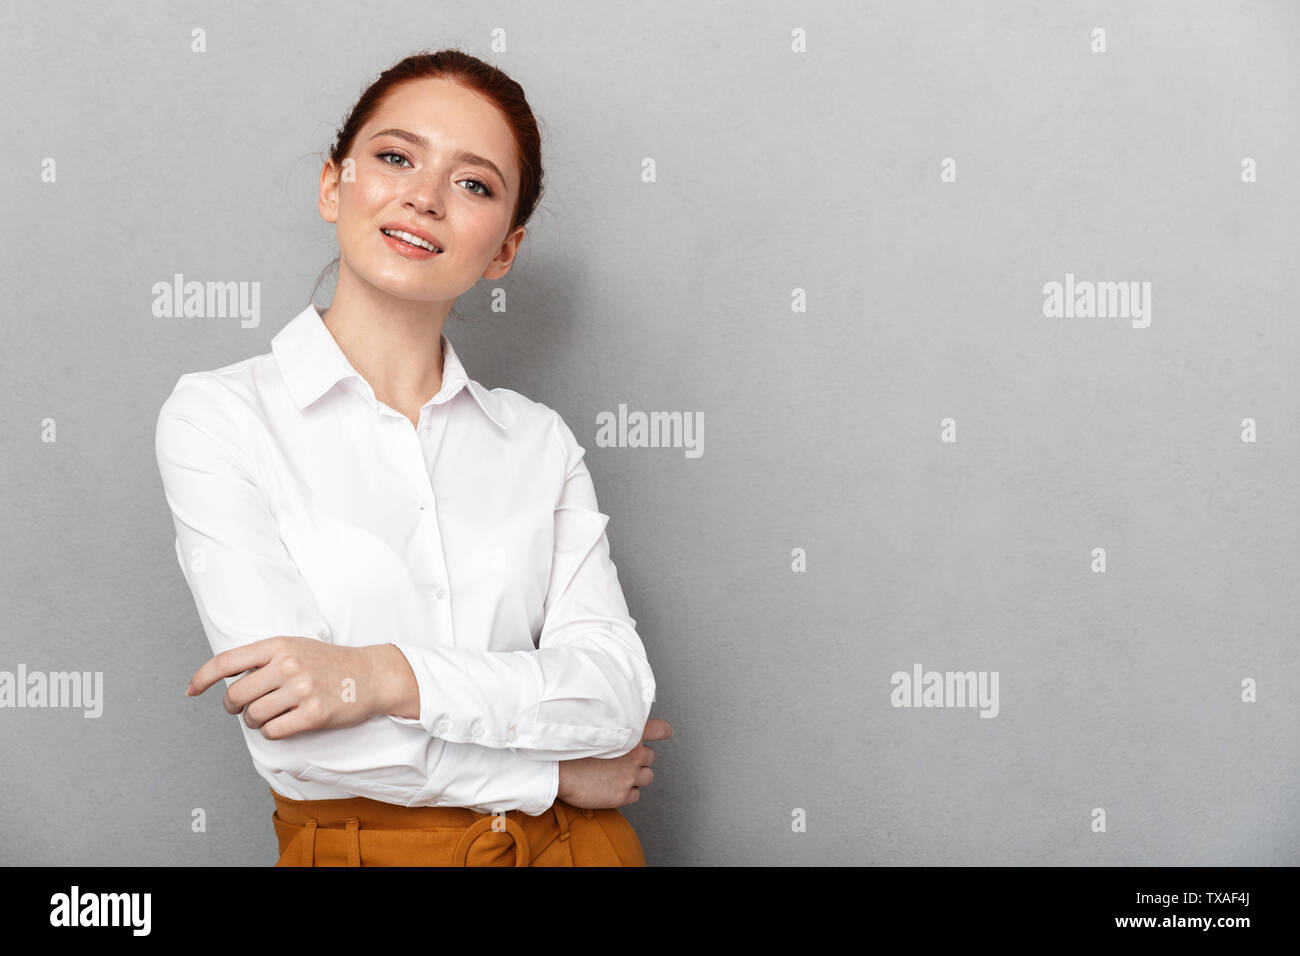 Portrait of caucasian redhead businesswoman 20s in formal wear smiling at camera and posing in office isolated over gray background - Stock Image